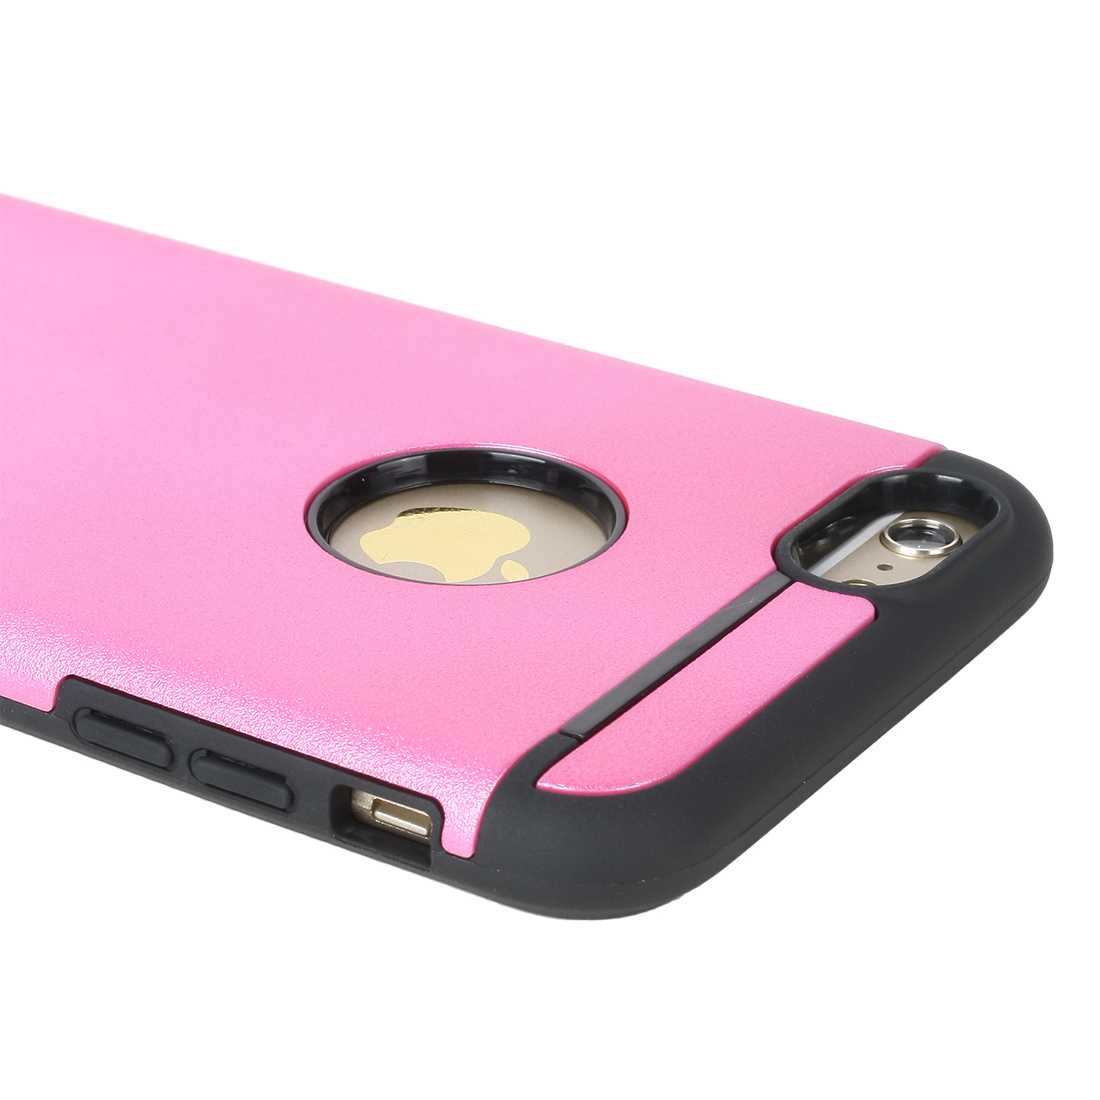 Shockproof Rugged Hybrid Rubber Hard Cover Case for Apple iPhone 6 Plus 5.5 Fuchsia